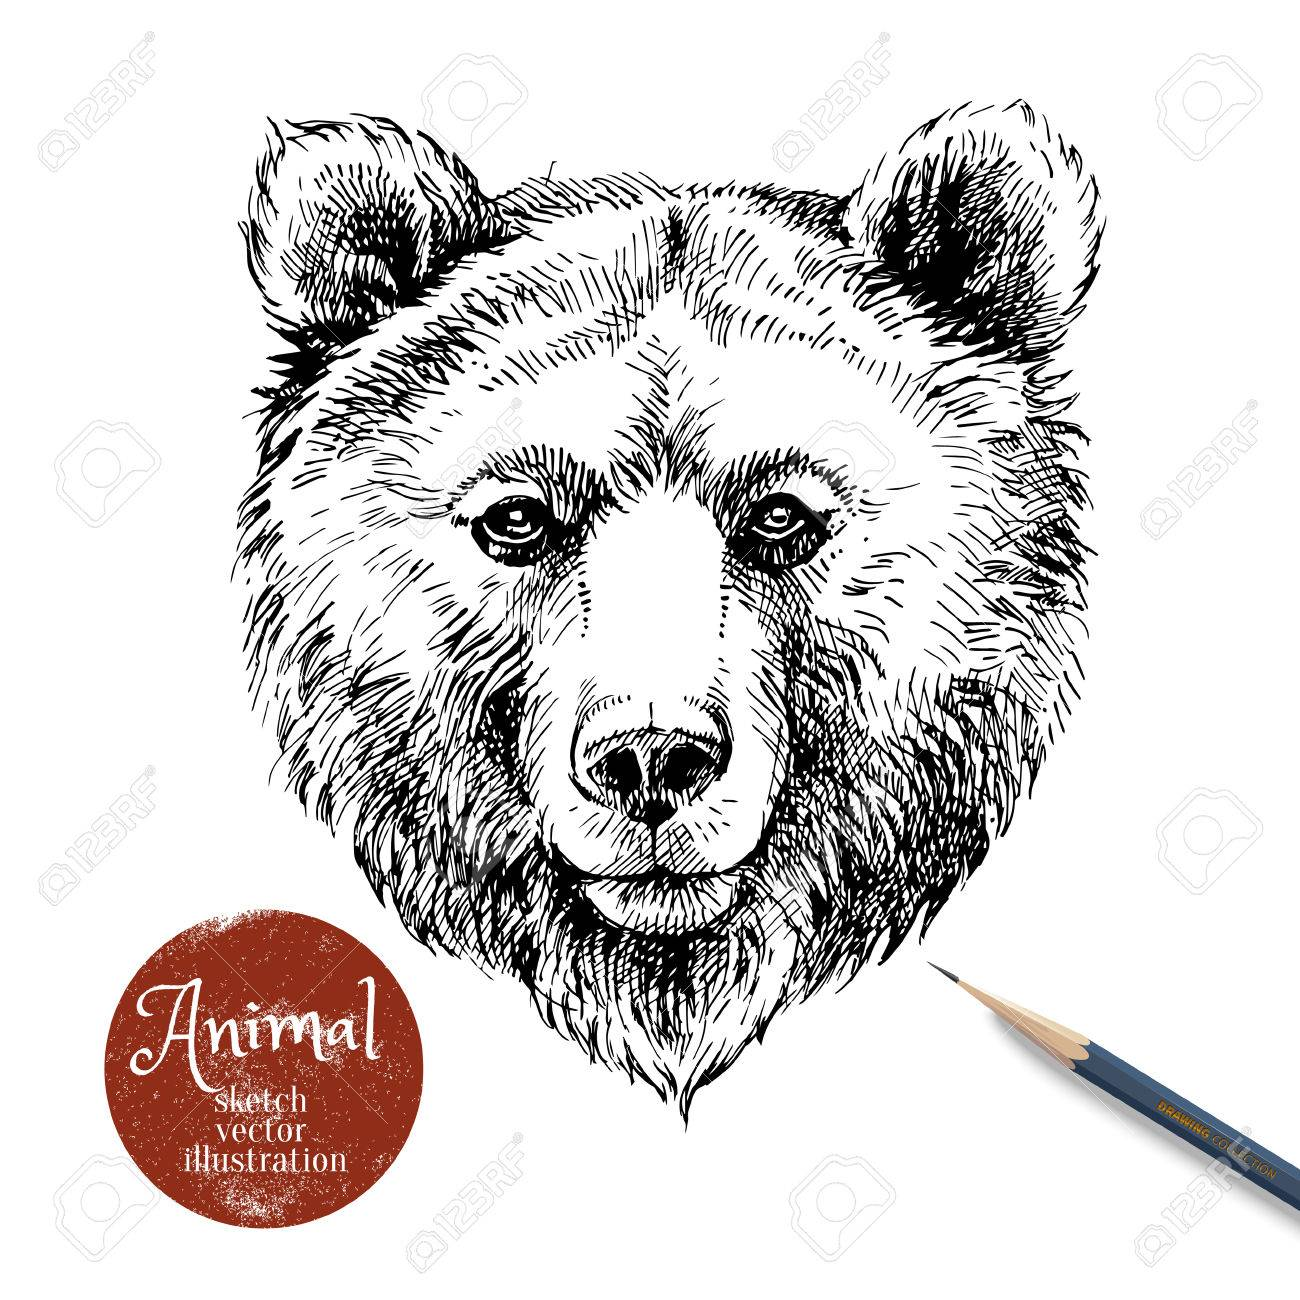 Hand drawn brown bear animal vector illustration sketch isolated bear portrait on white background with